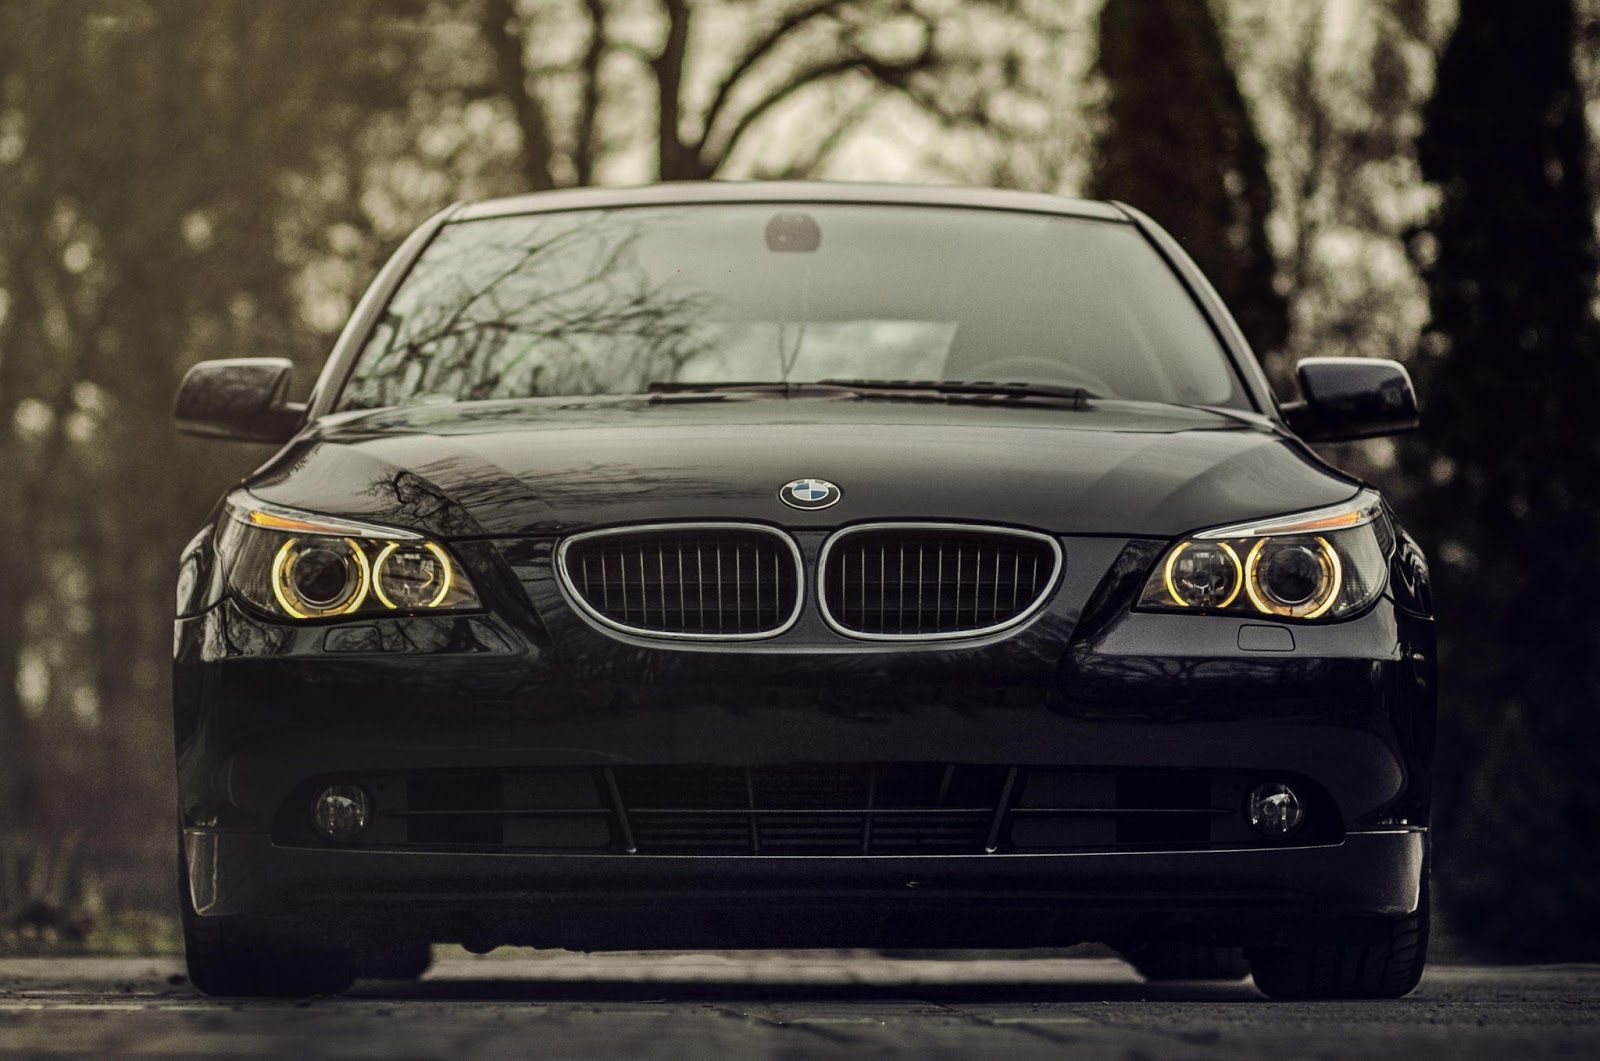 Bmw 520d Black Front View Front Bumper Full Hd 1080p Cars Wallpapers Desktop Backgrounds Hd Pictures And Images Bmw Wallpapers Car Wallpapers Bmw